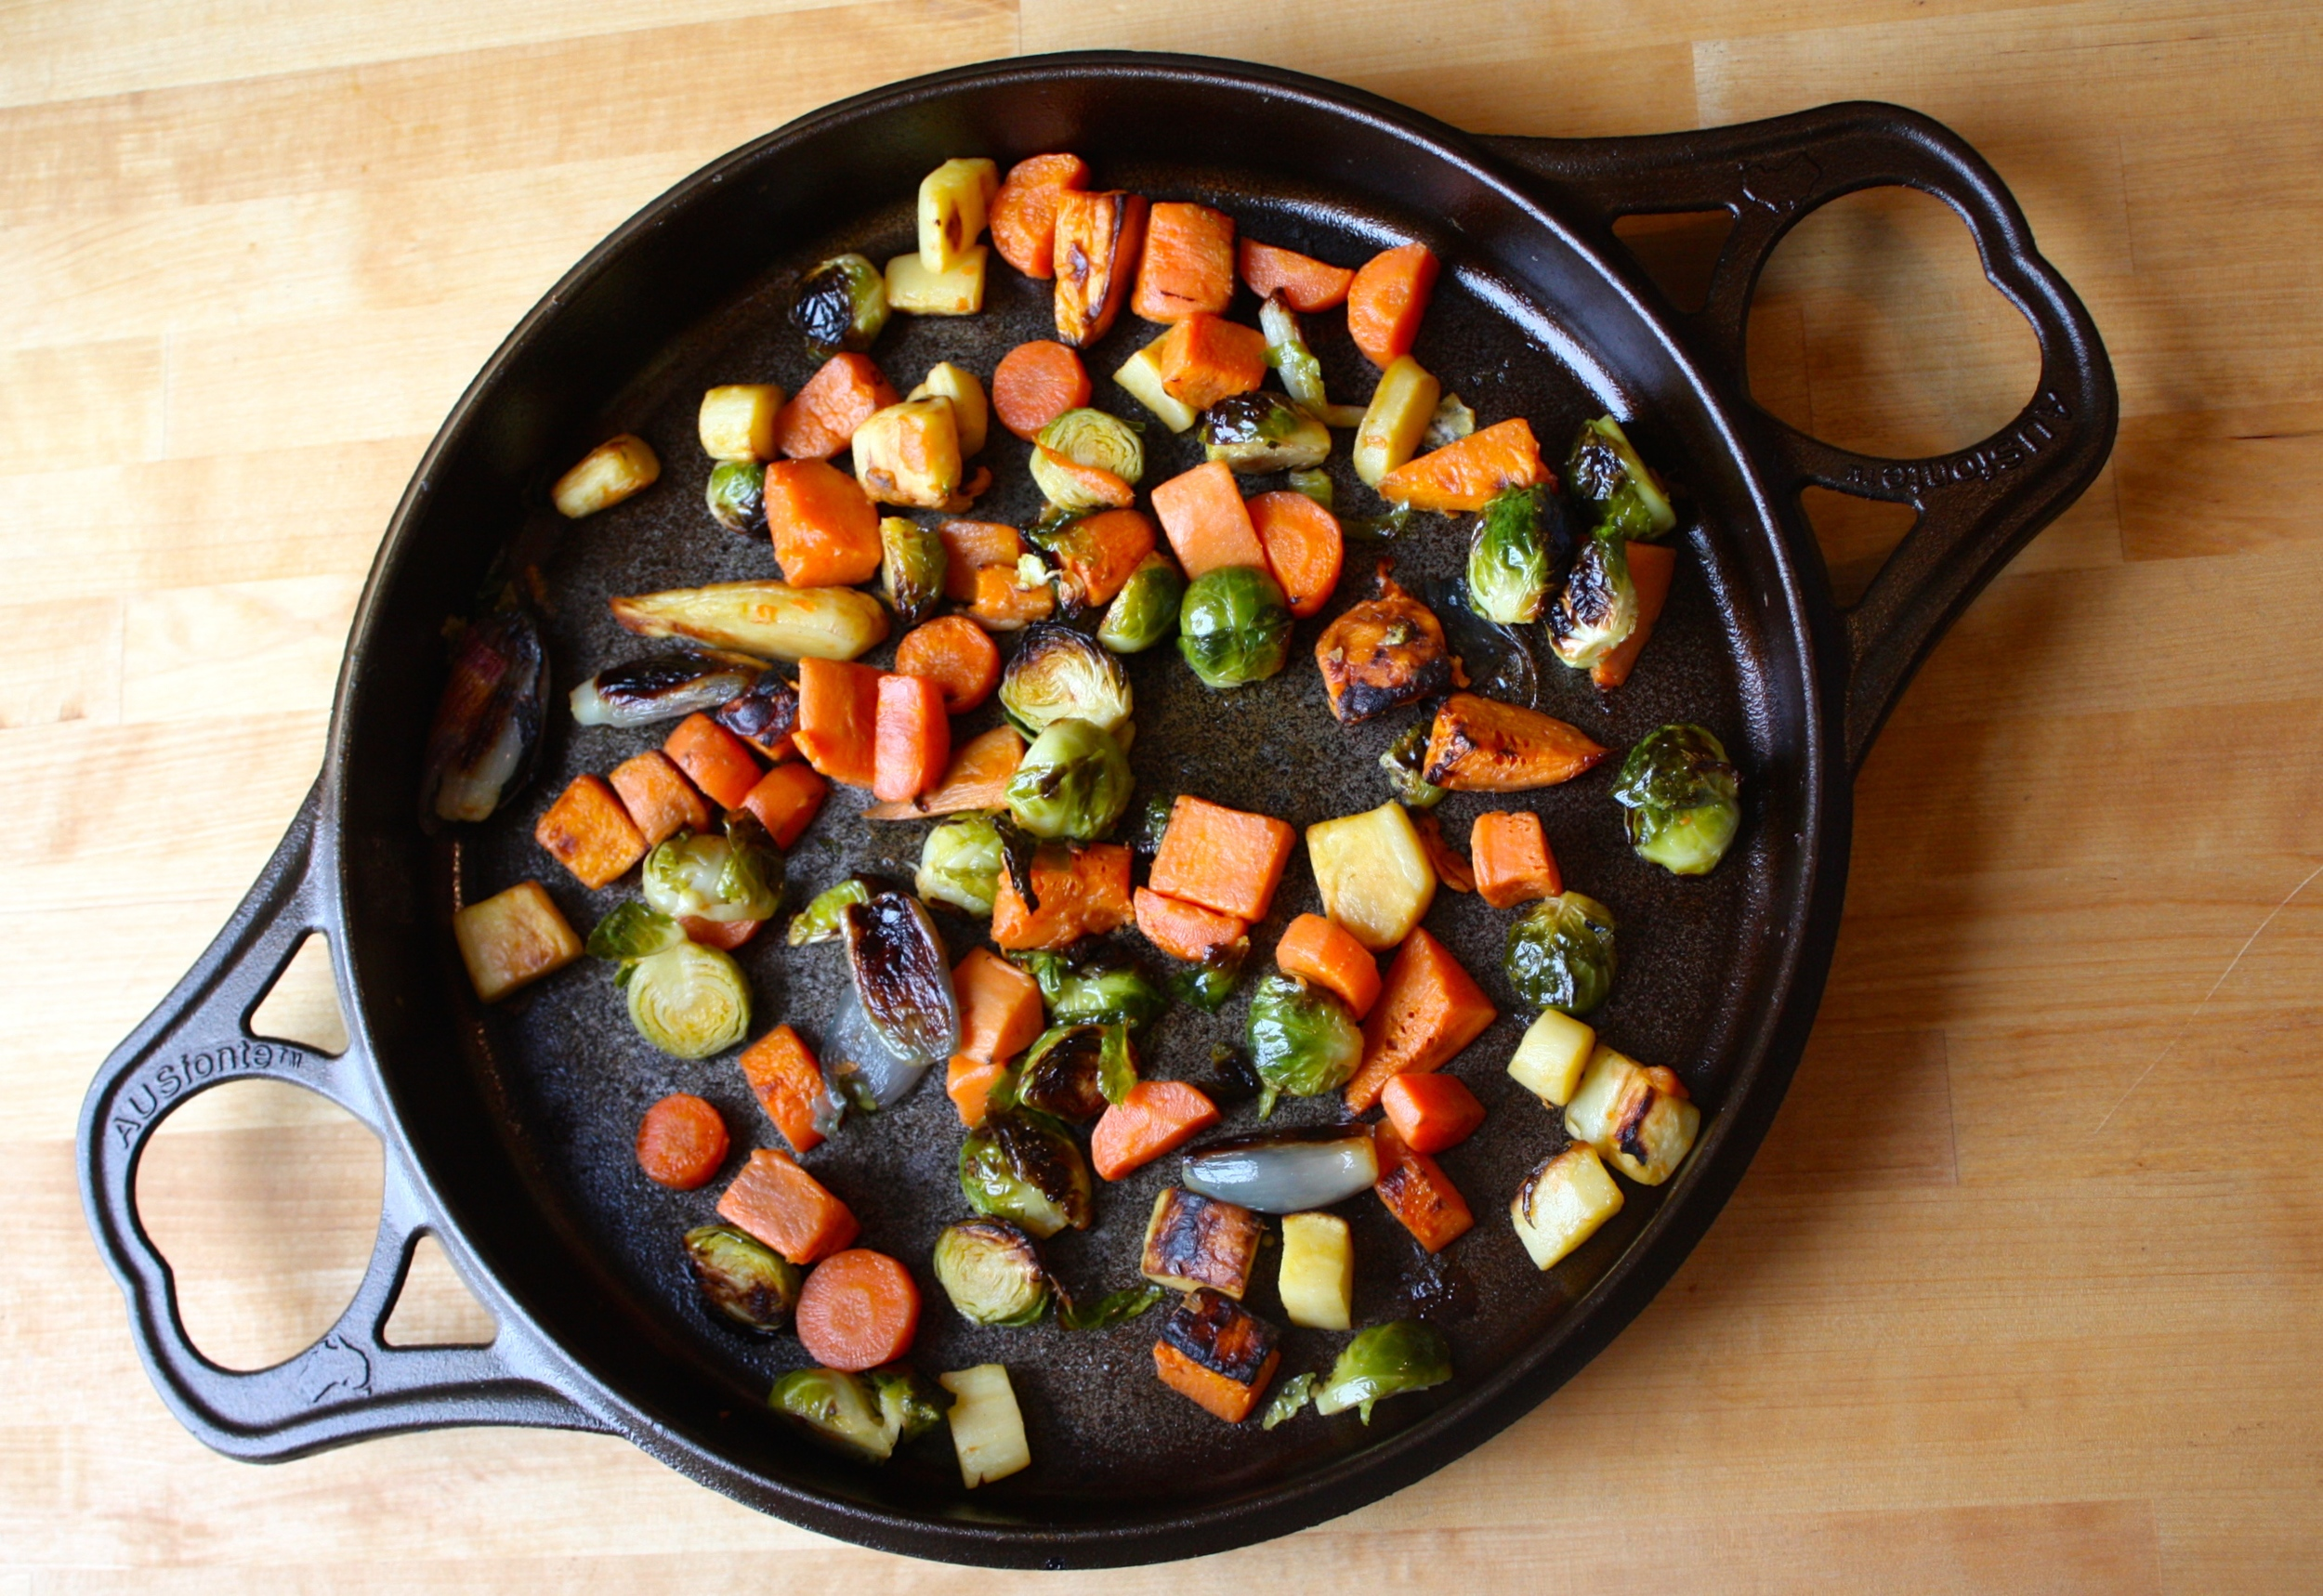 Solidteknics BIGskillet roast vegetables 2-2-15.JPG